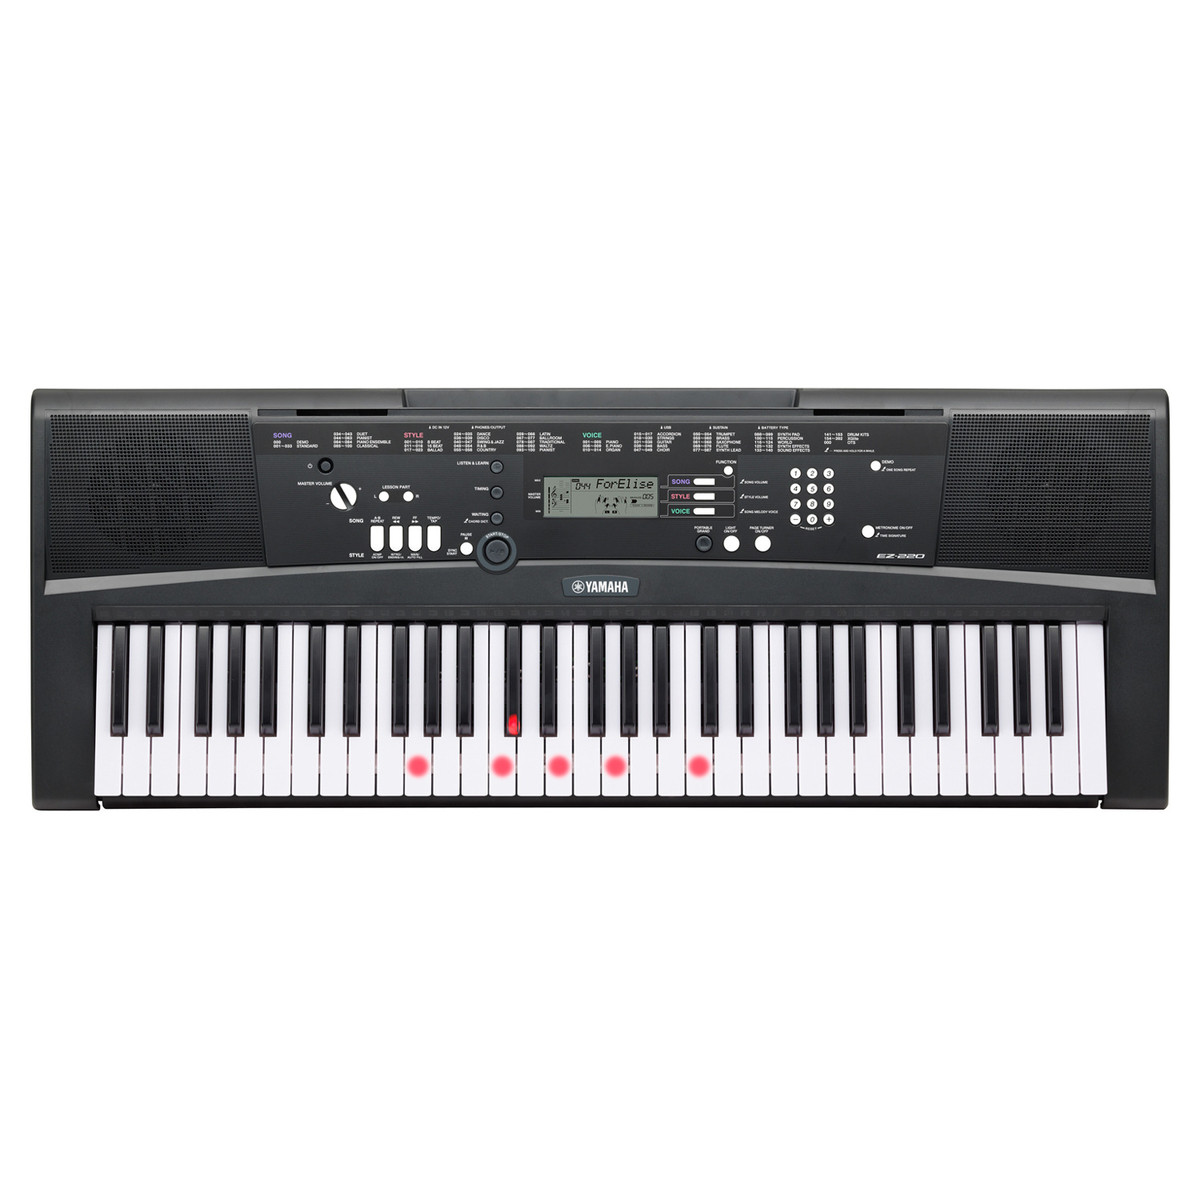 yamaha ez220 61 key keylighting keyboard box opened at. Black Bedroom Furniture Sets. Home Design Ideas